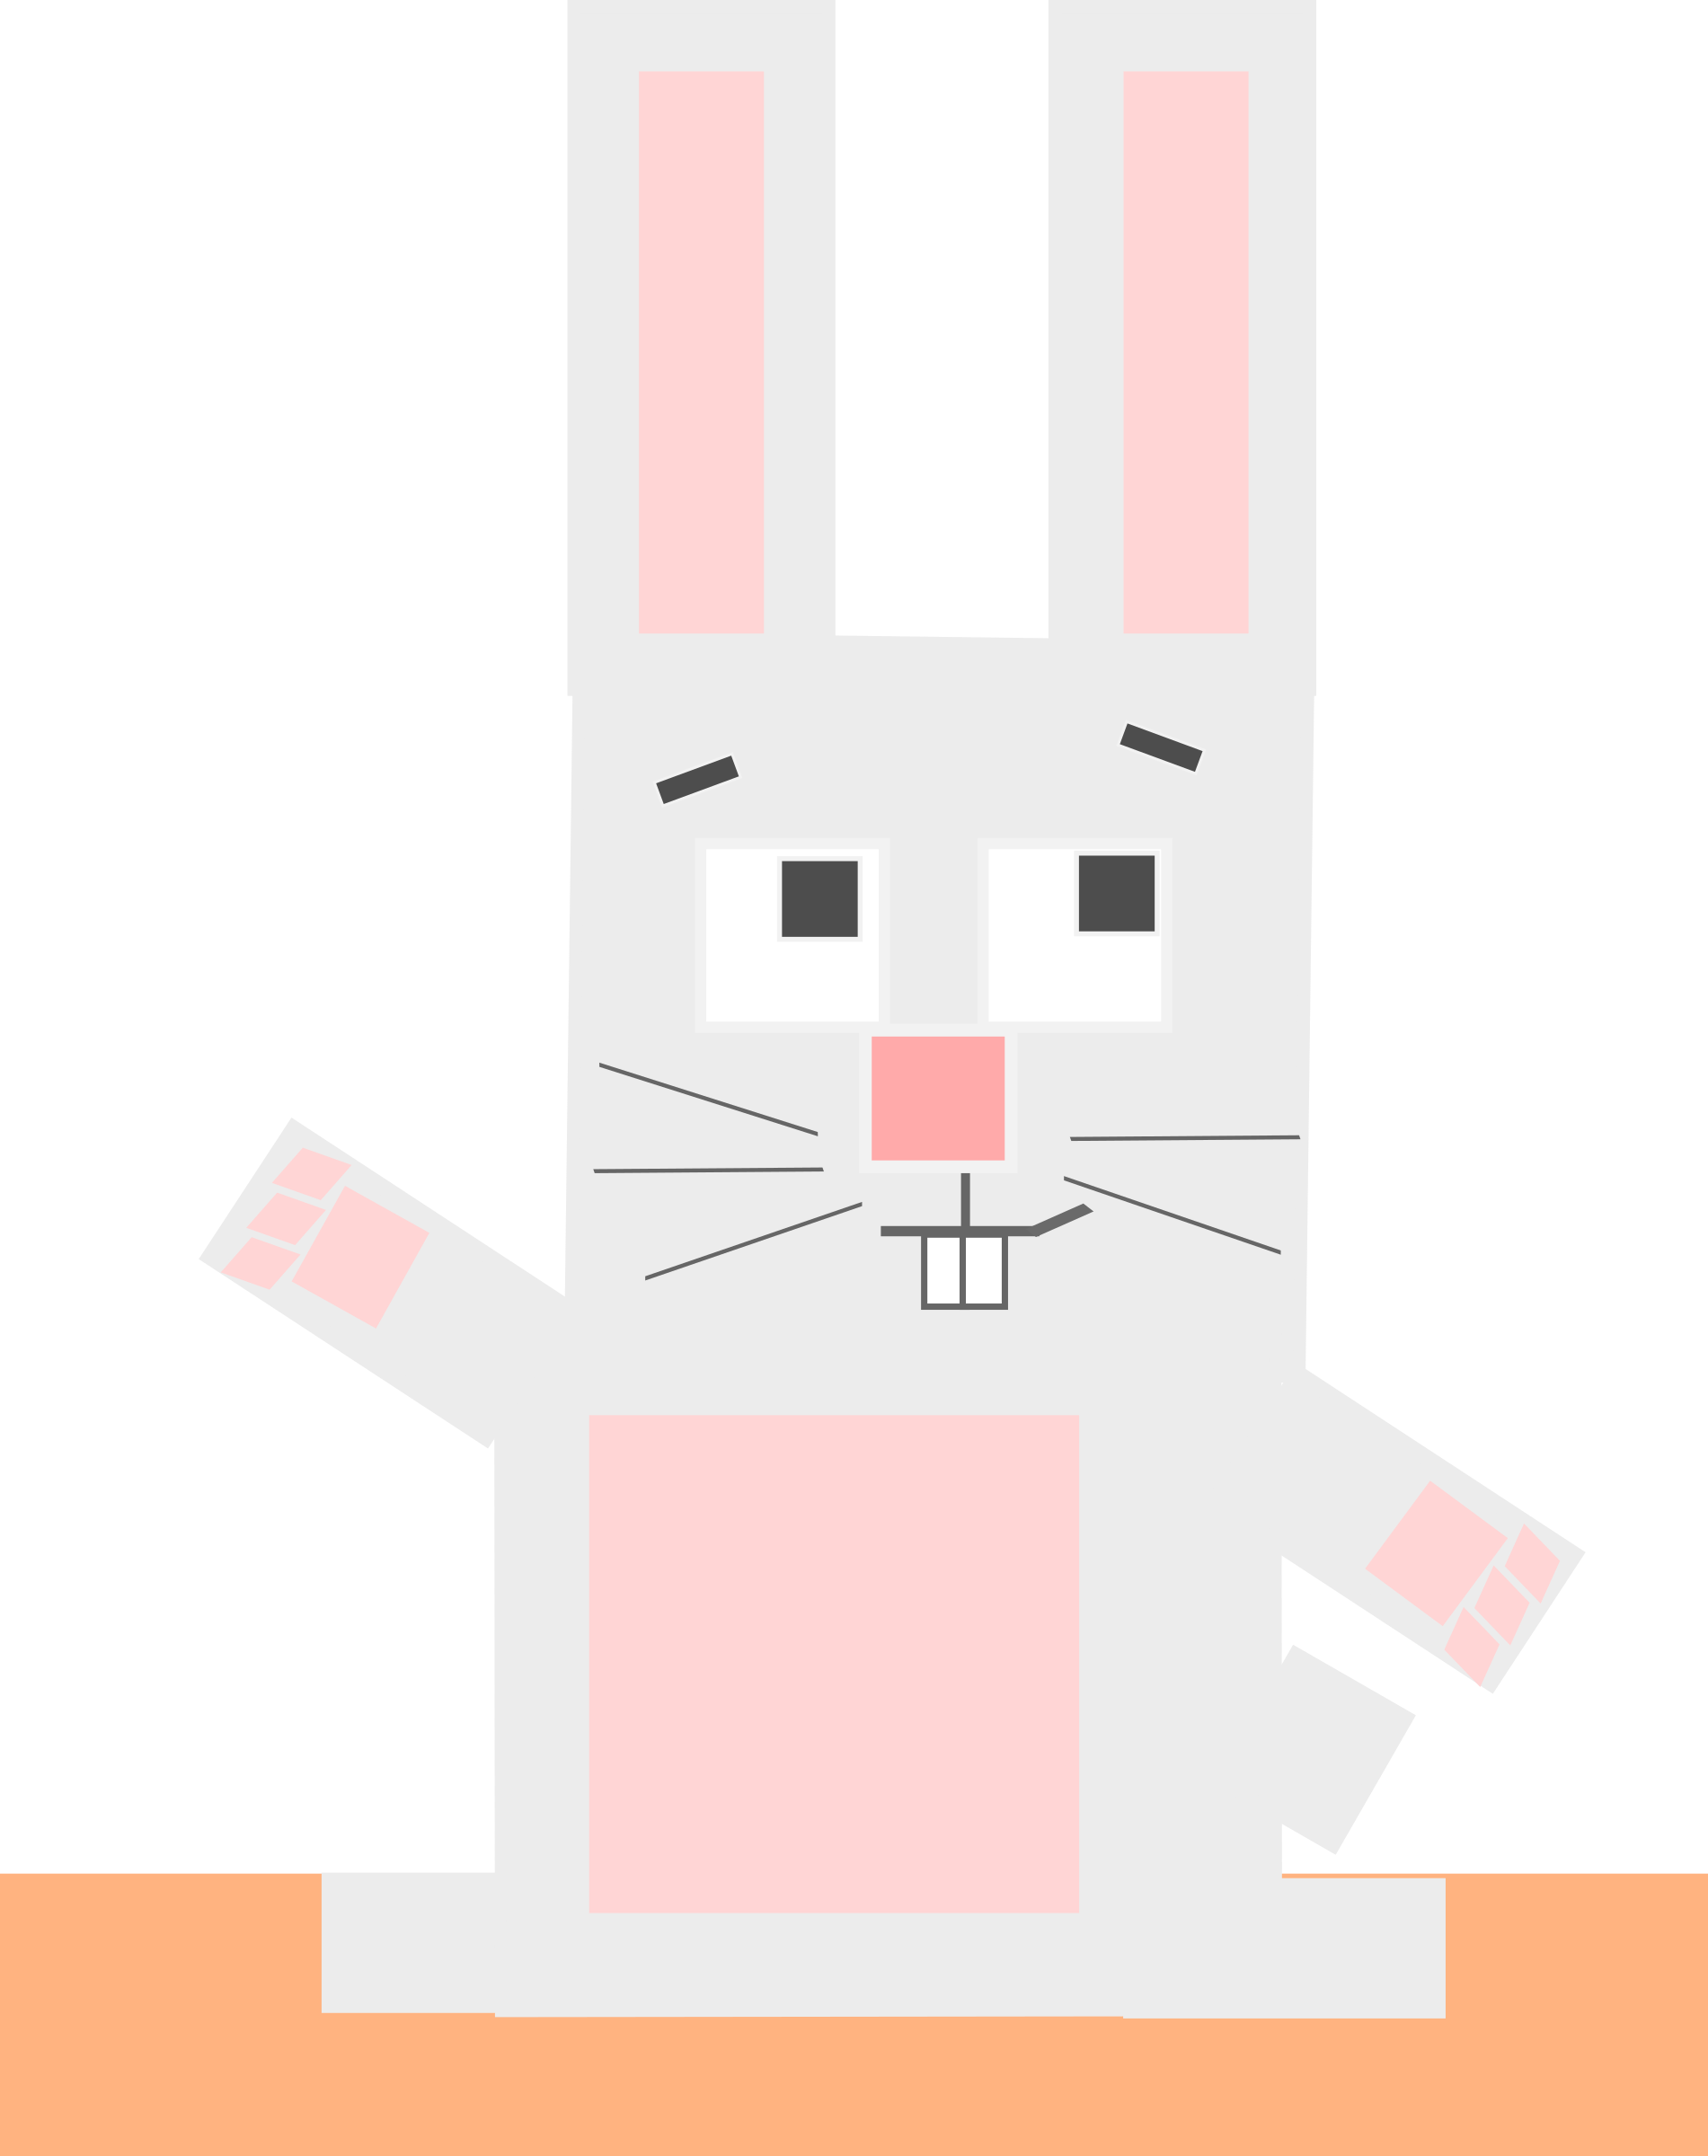 Square animal cartoon rabbit by Dog99x